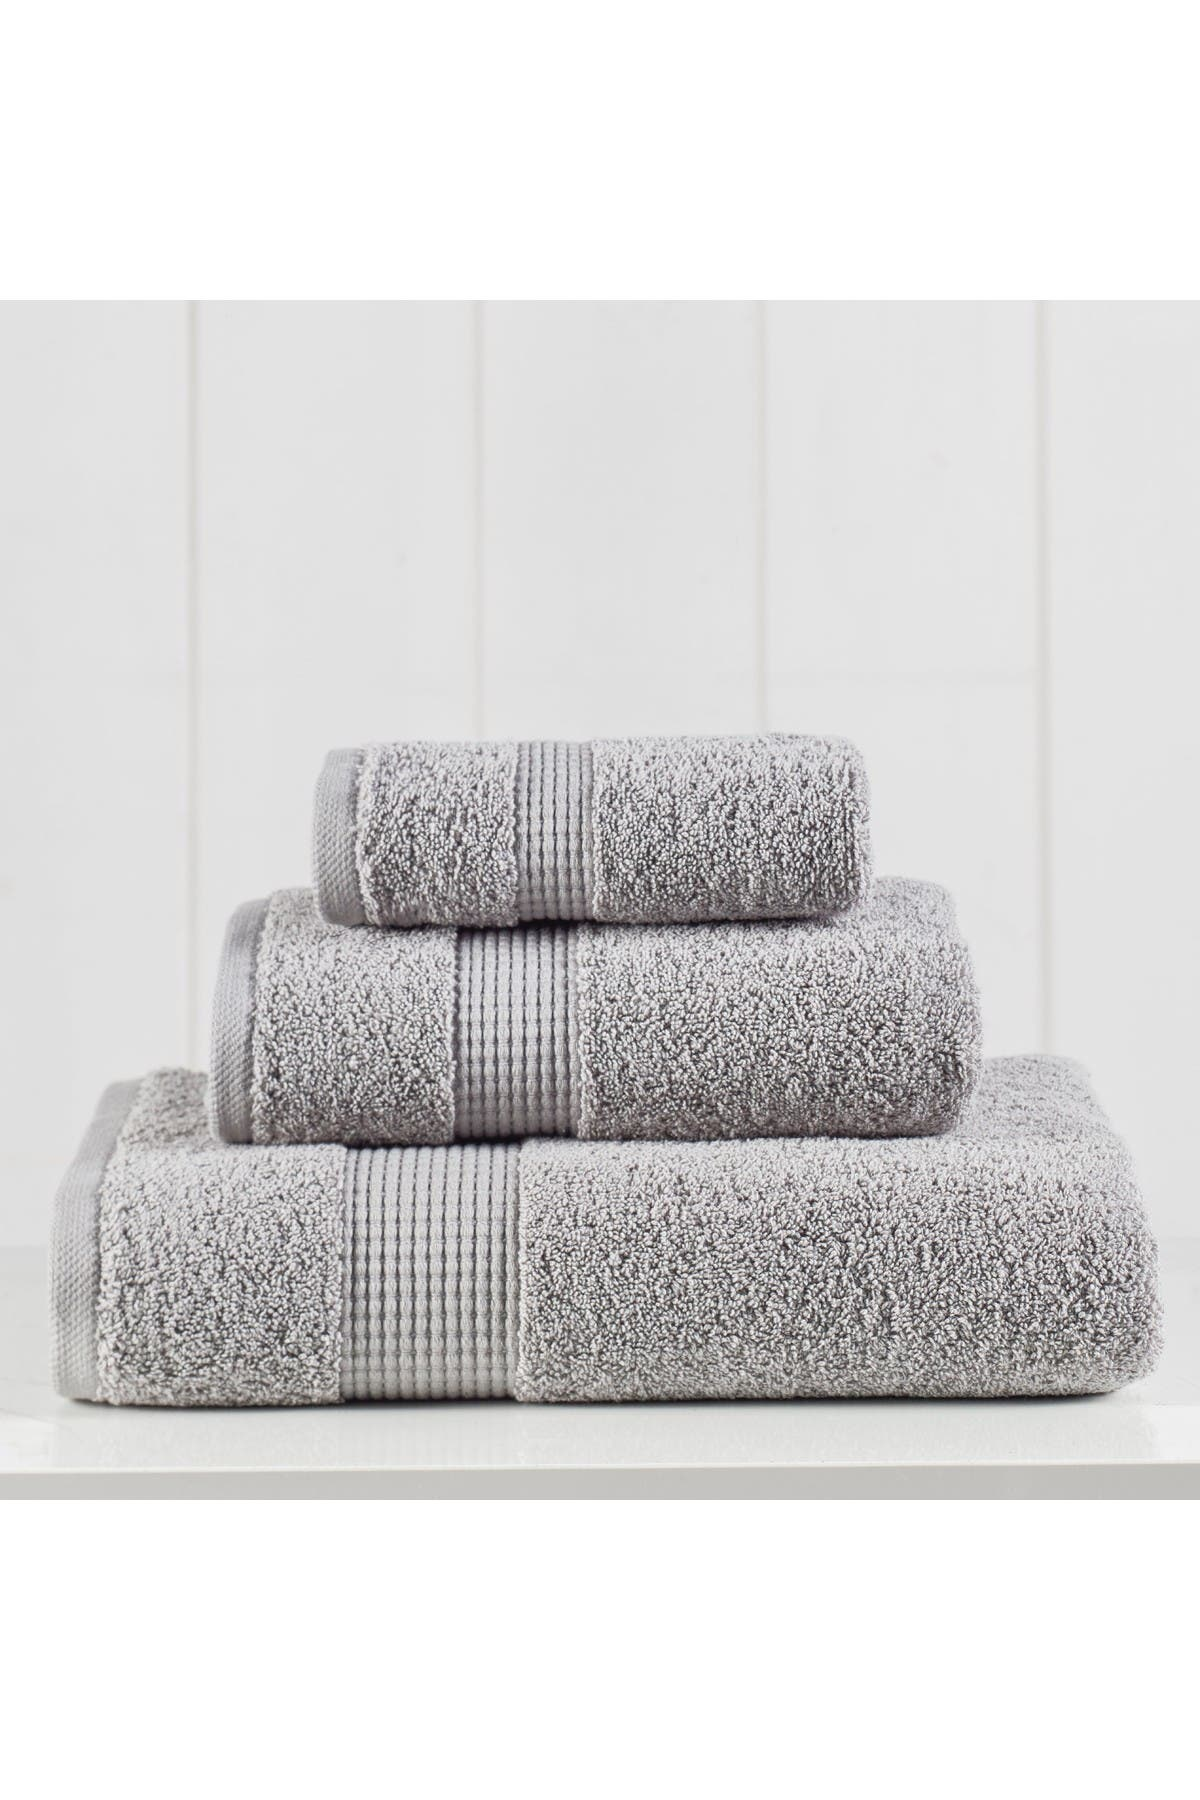 Image of Modern Threads Manor Ridge Turkish Cotton 3-Piece Towel Set - Gray